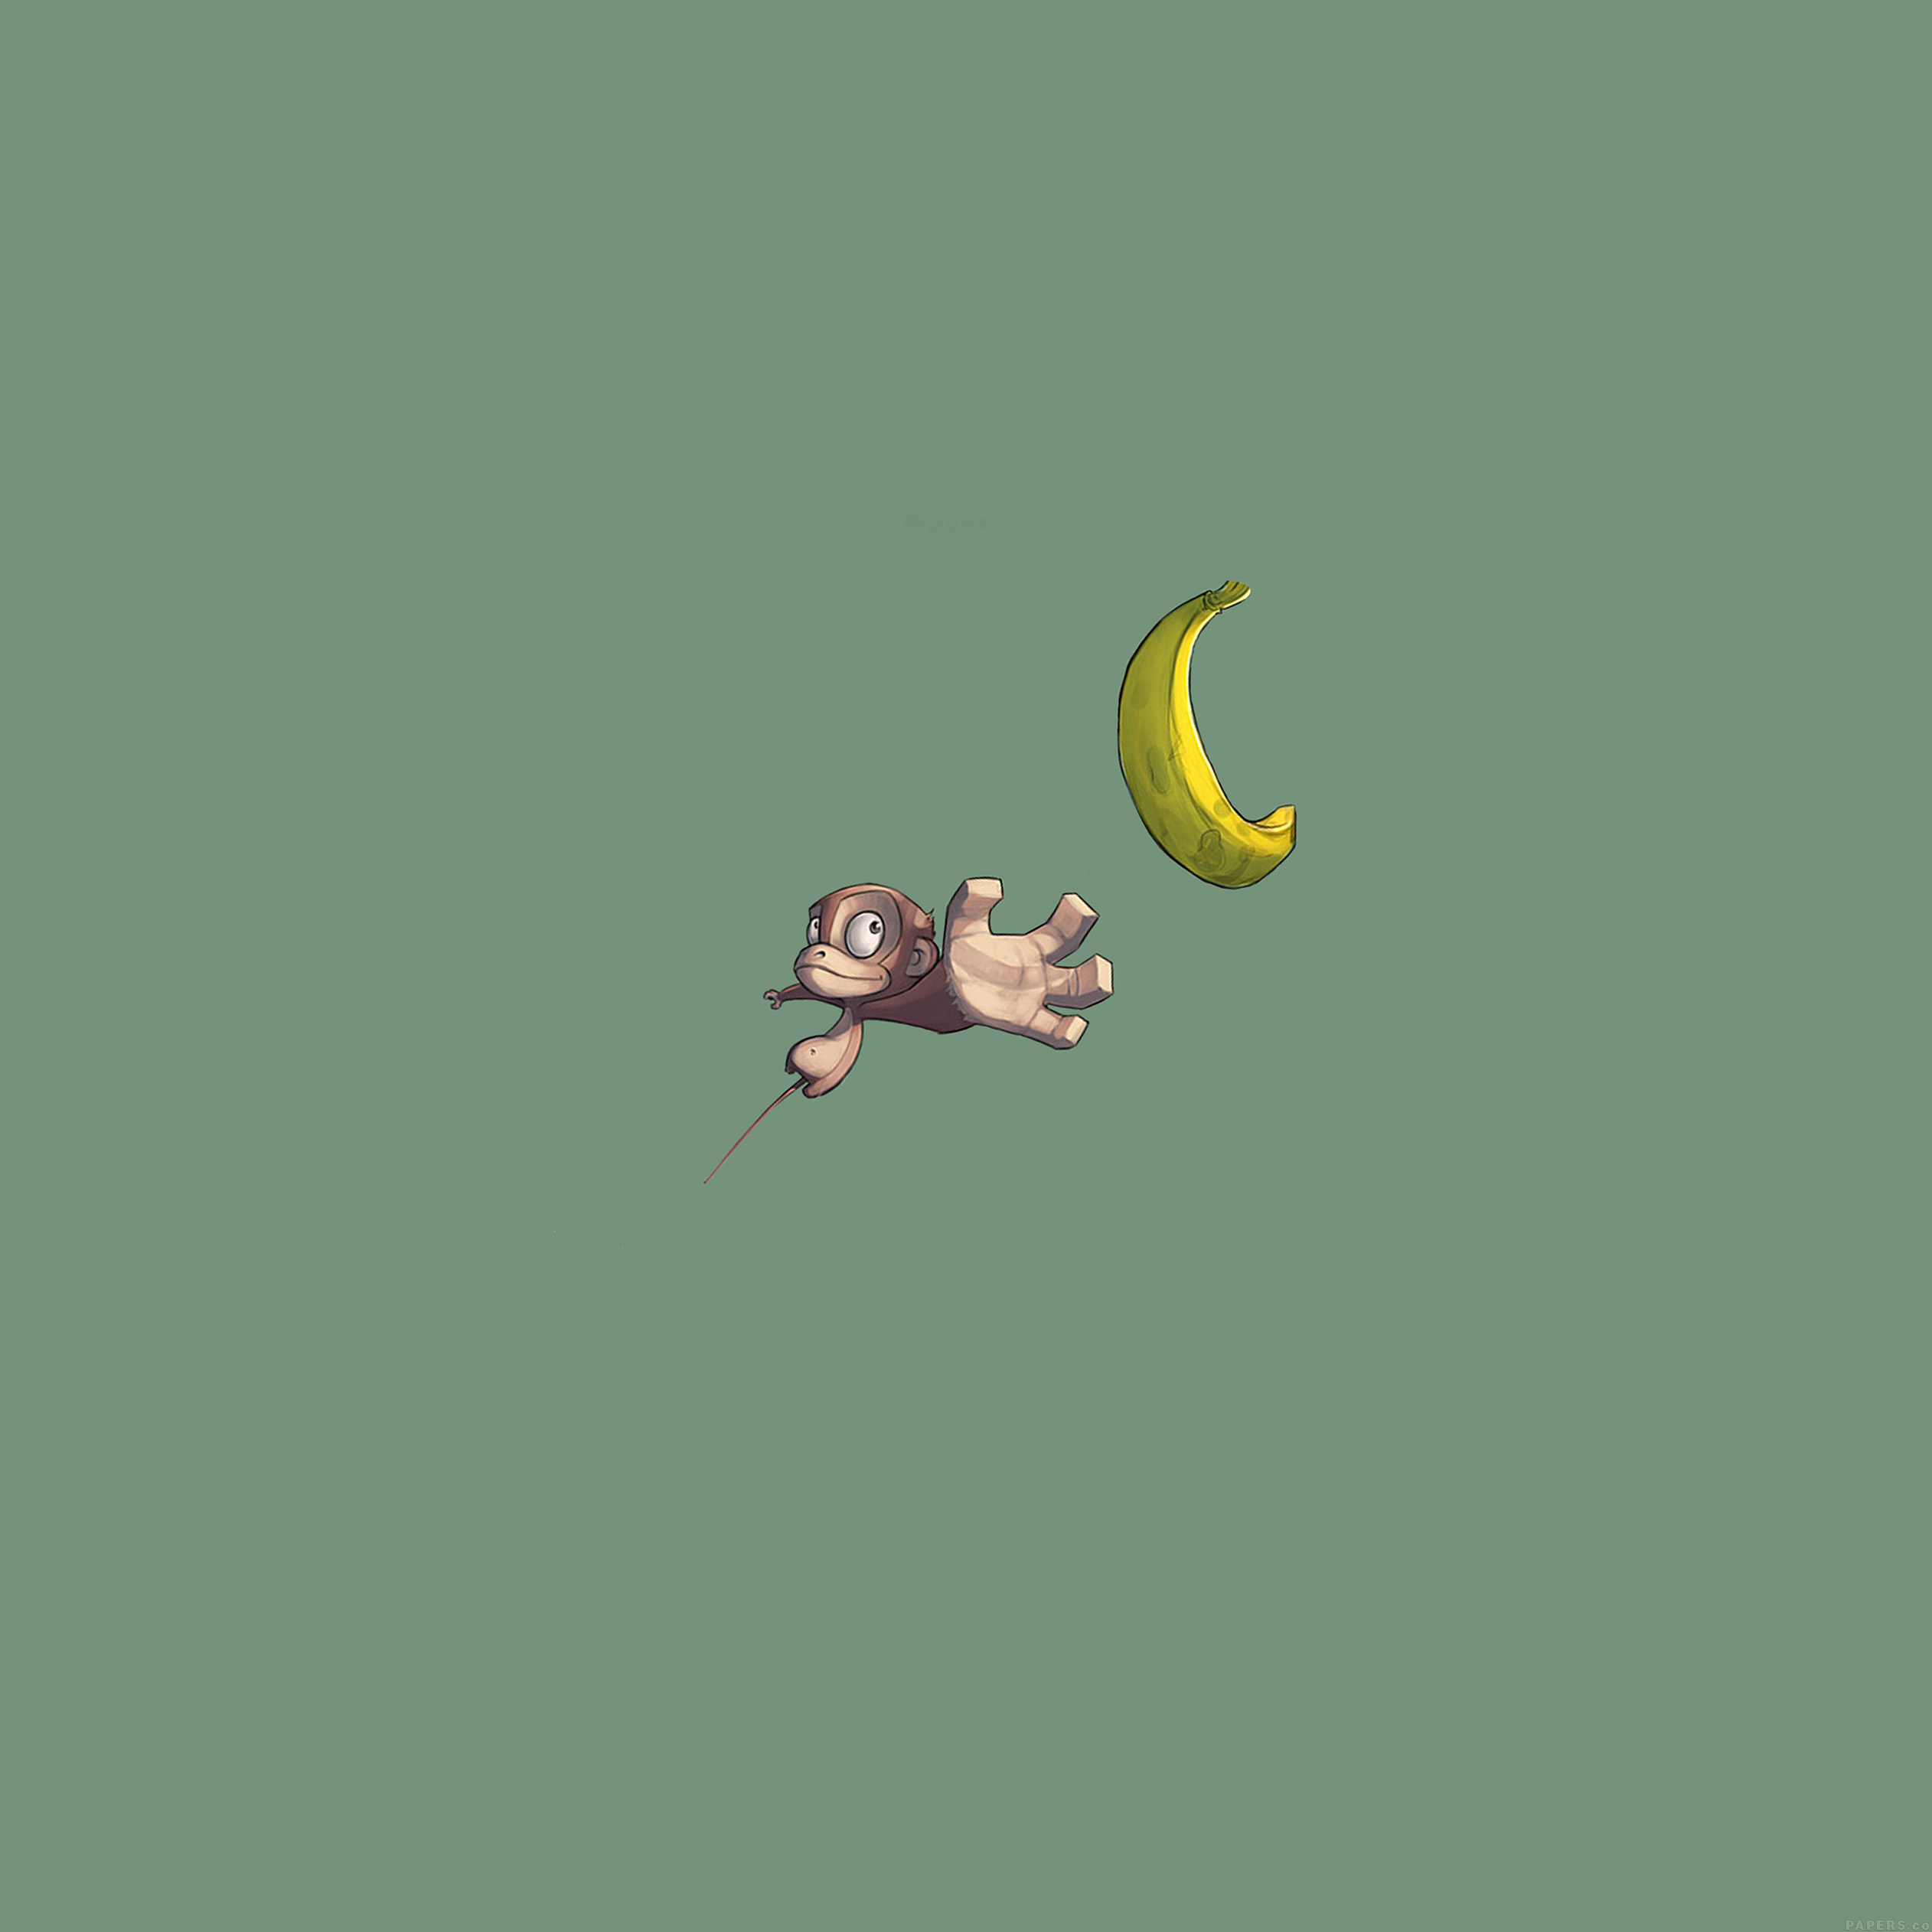 Sheep 9 Animals Minimalistic Wallpapers For Iphone: Illustrated Animal Kingdom Wallpapers For IPad And IPhone